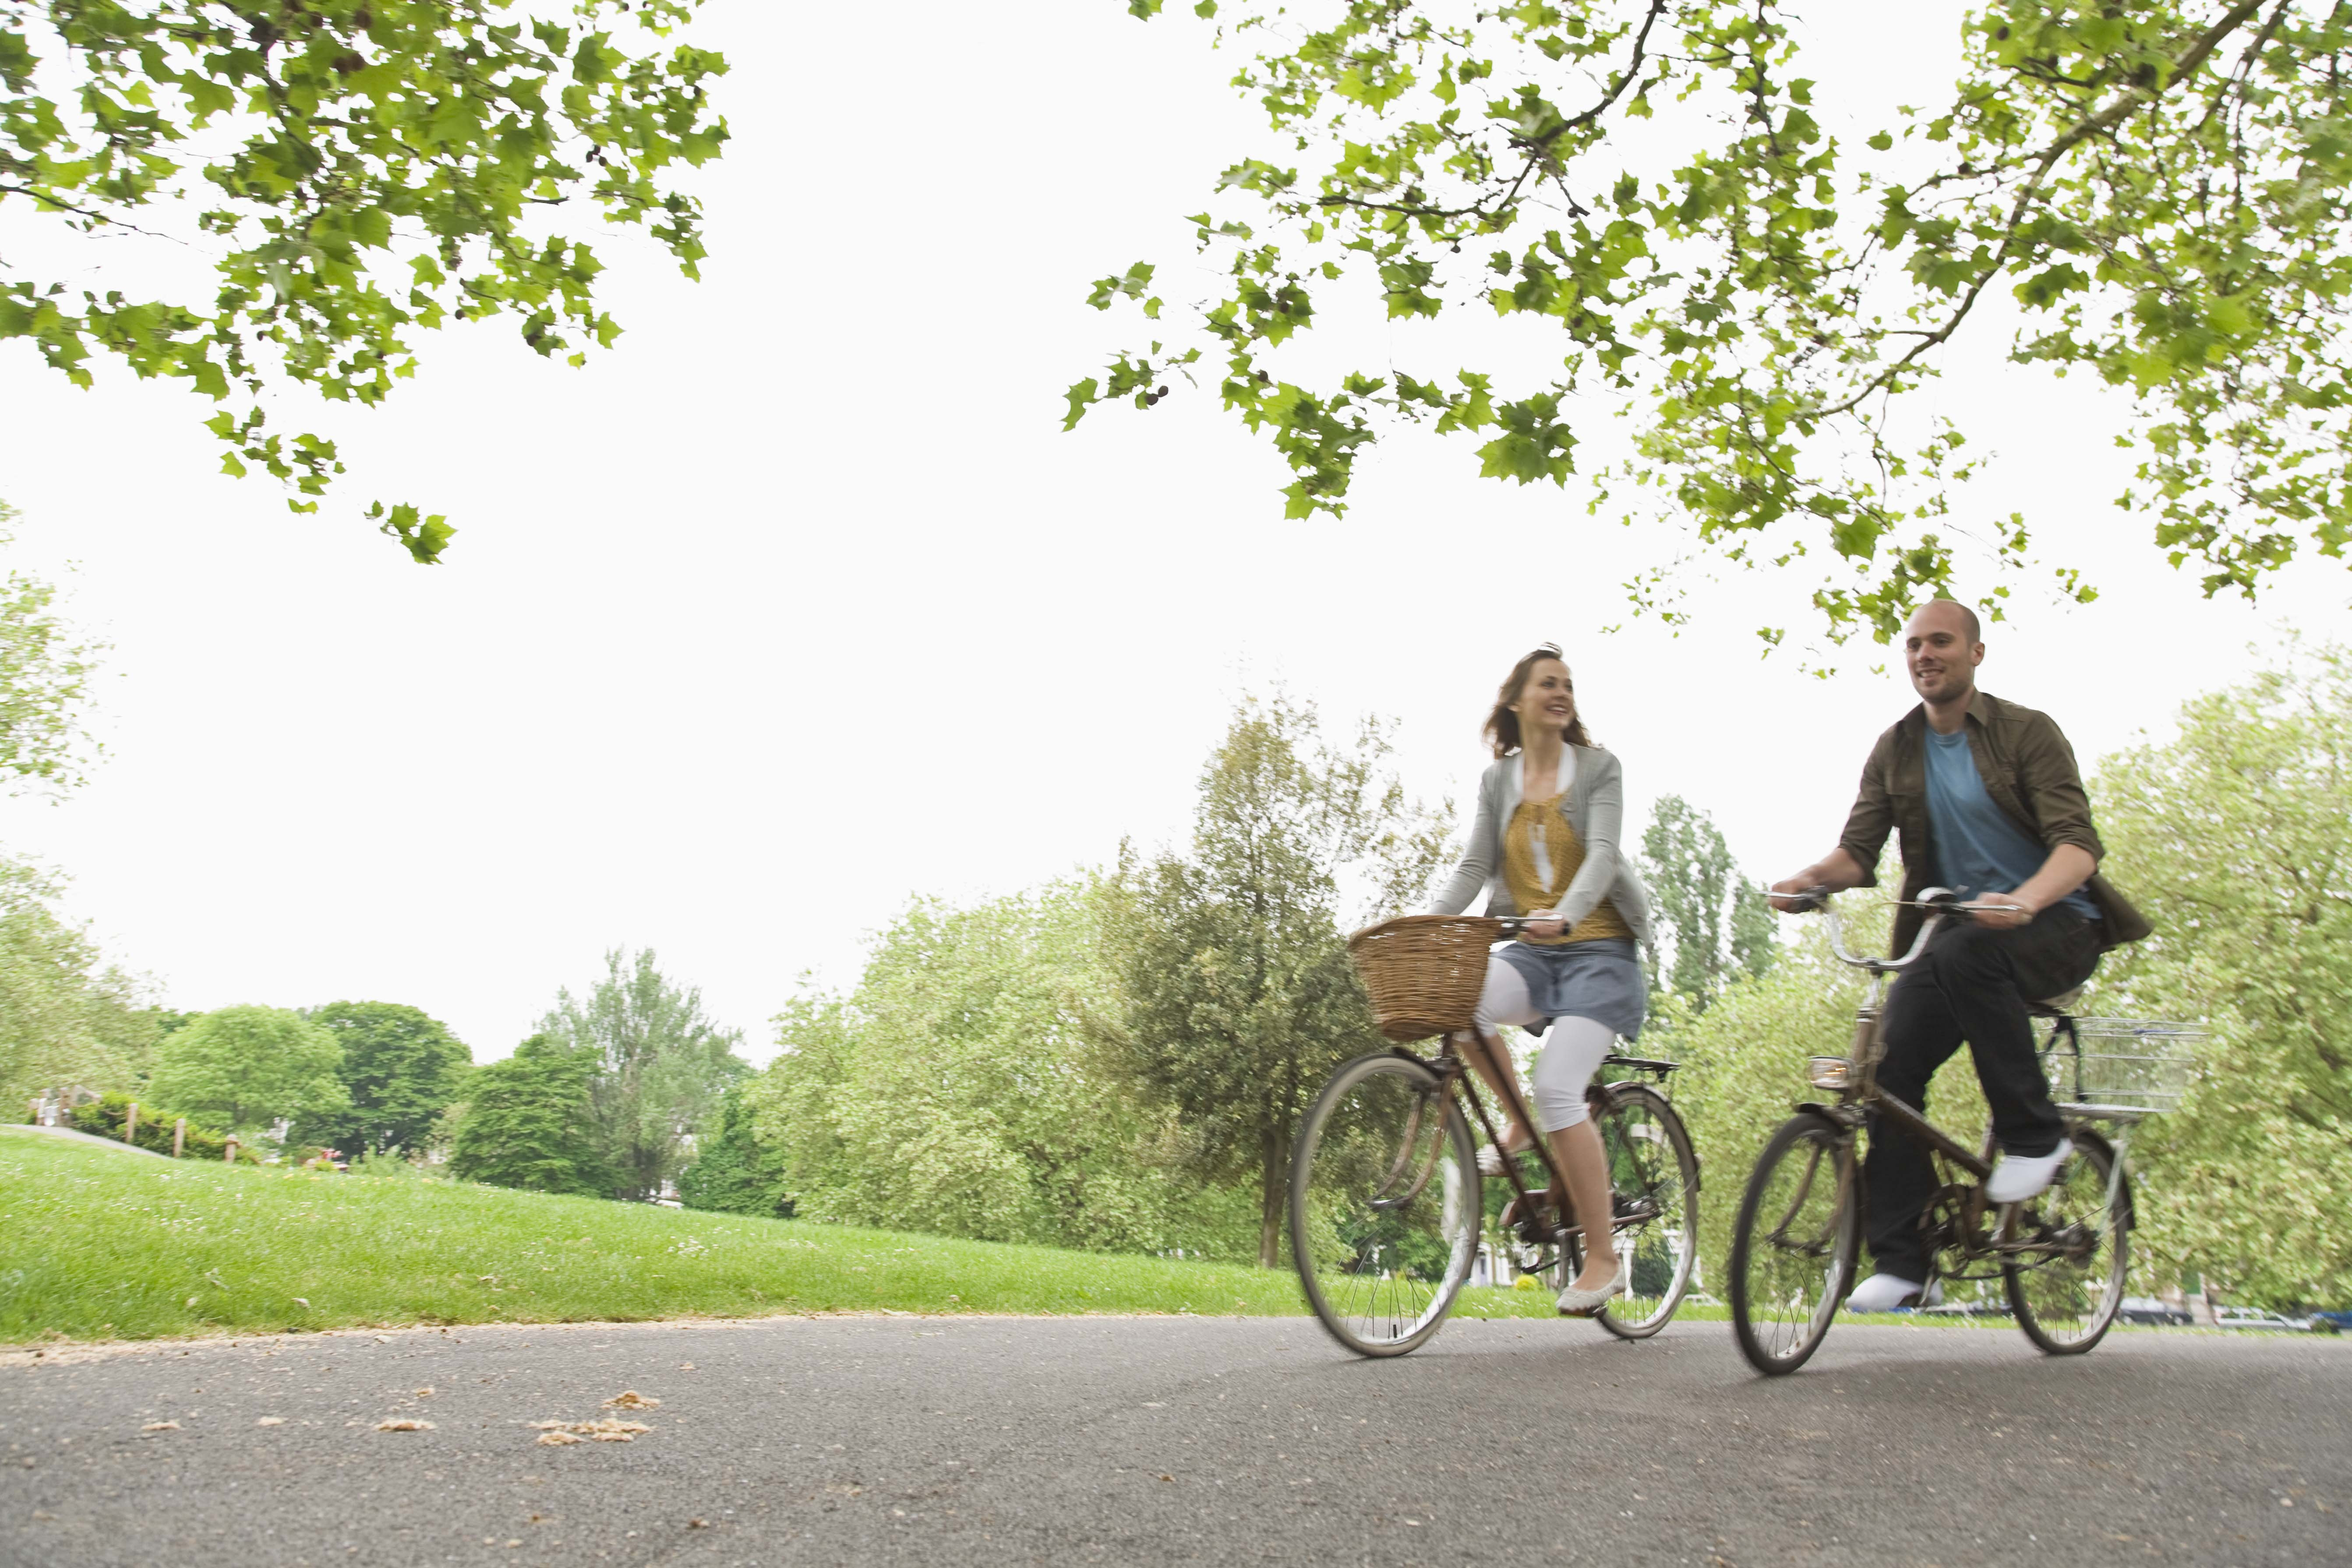 Virginia, Maryland rank high in 'Bicycle Friendly State' survey